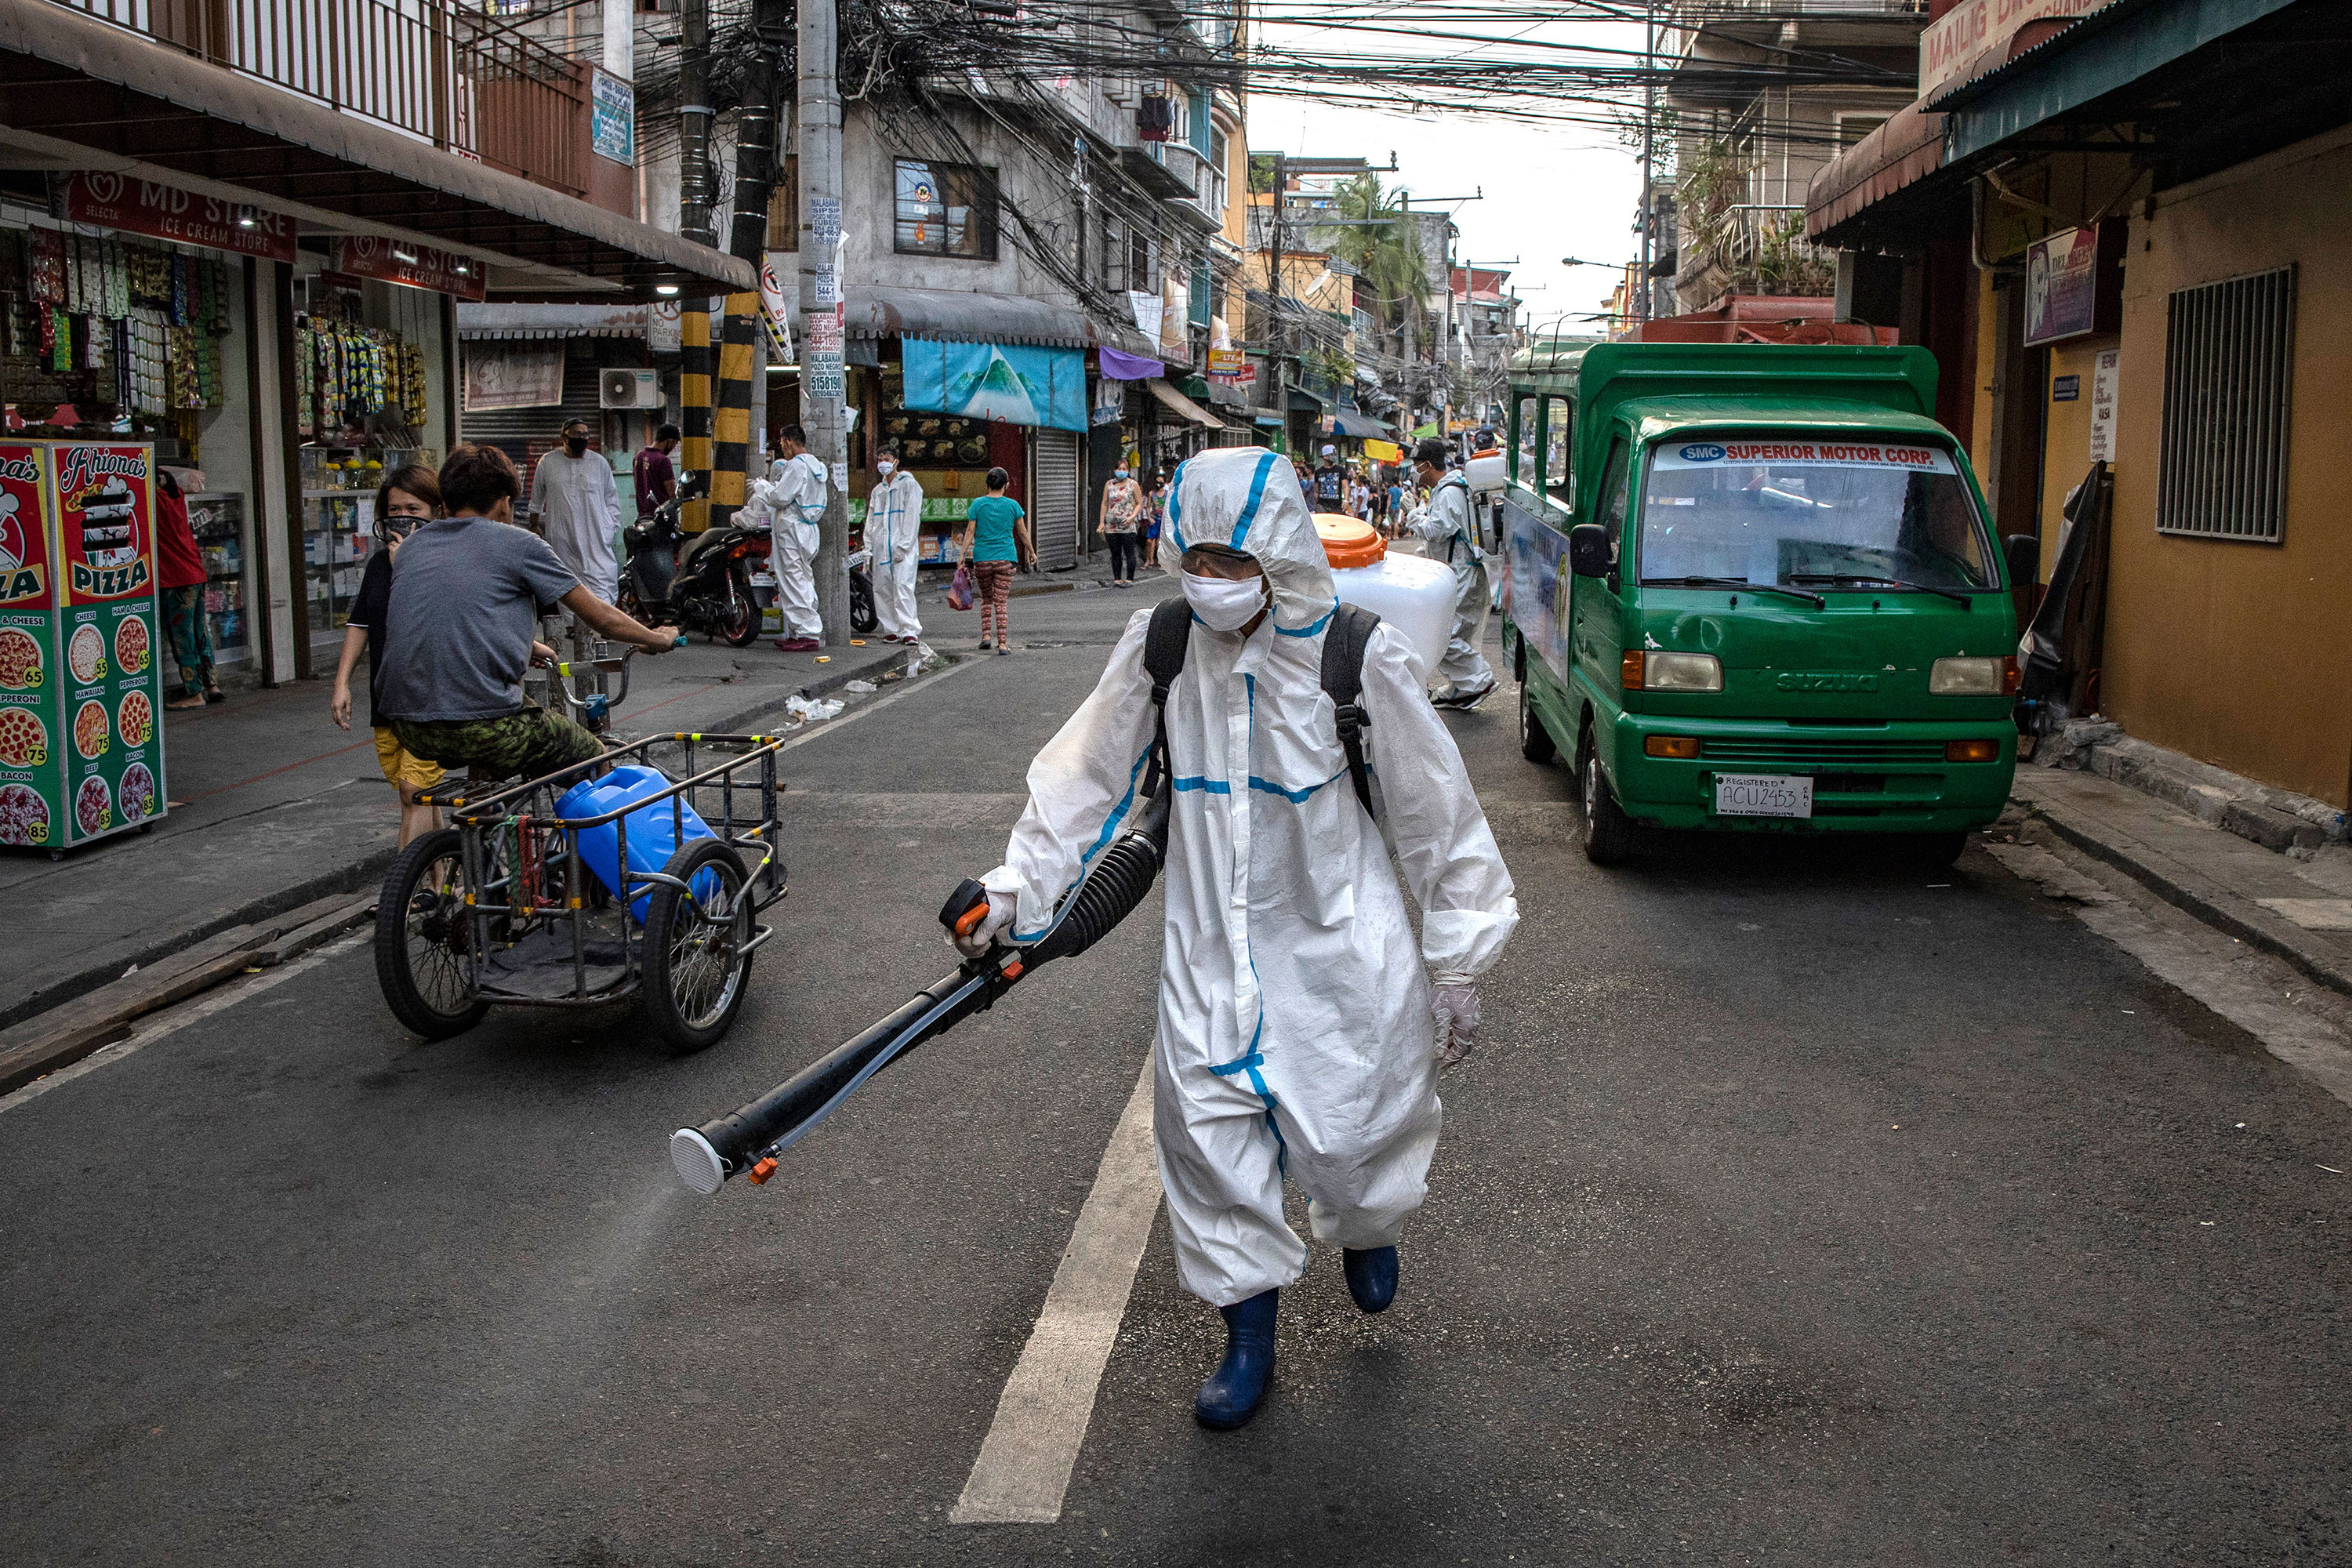 A worker sprays disinfectant along a street in San Juan, Metro Manila, Philippines on March 23.